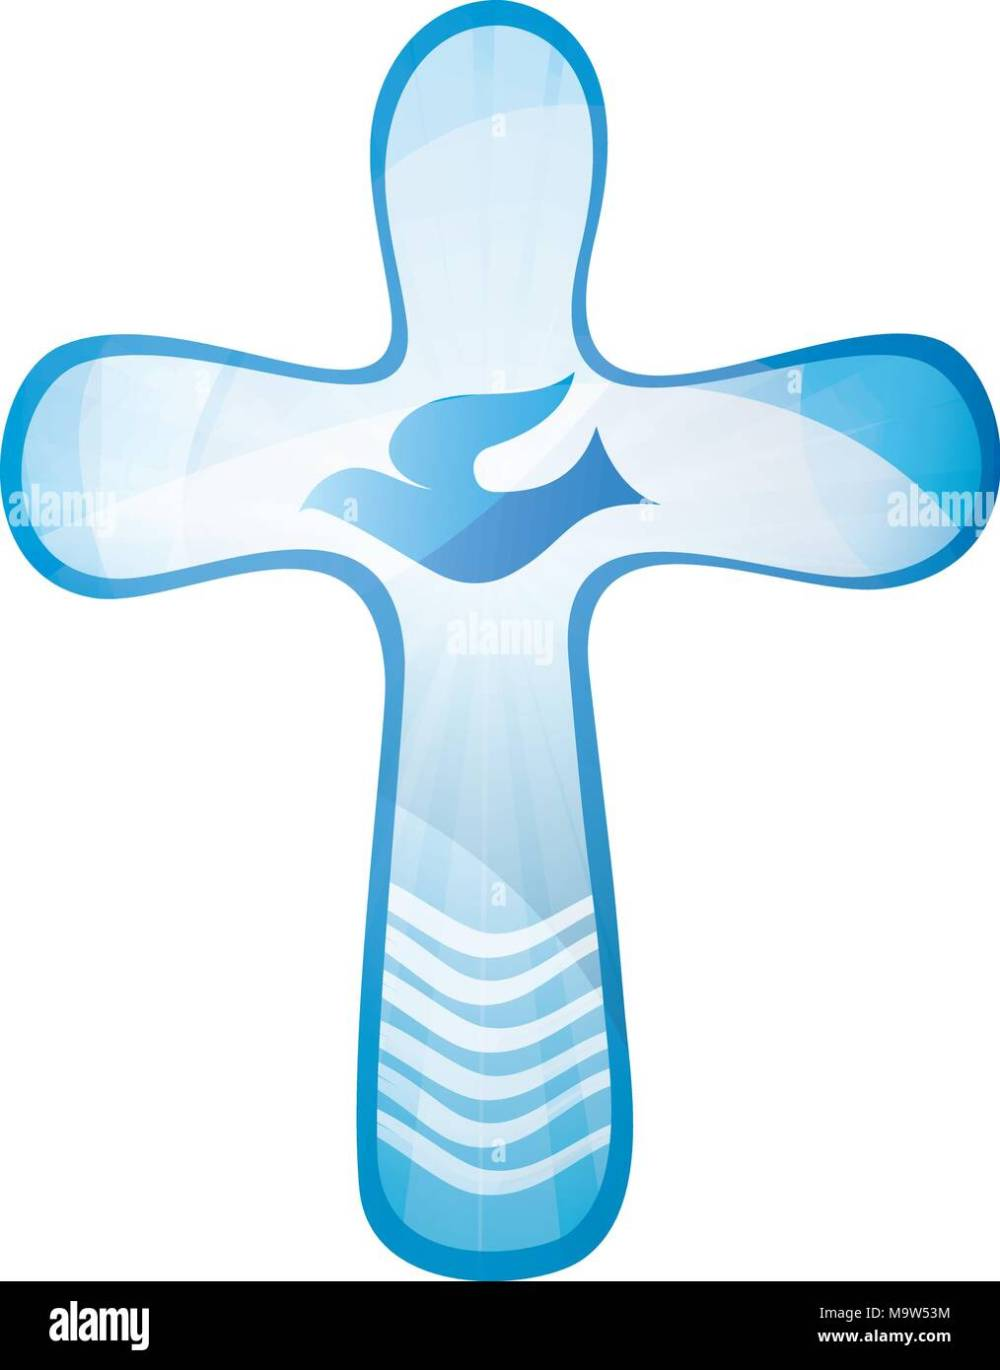 medium resolution of baptism christian cross with dove and waves of water on a blue background religious sign isolated